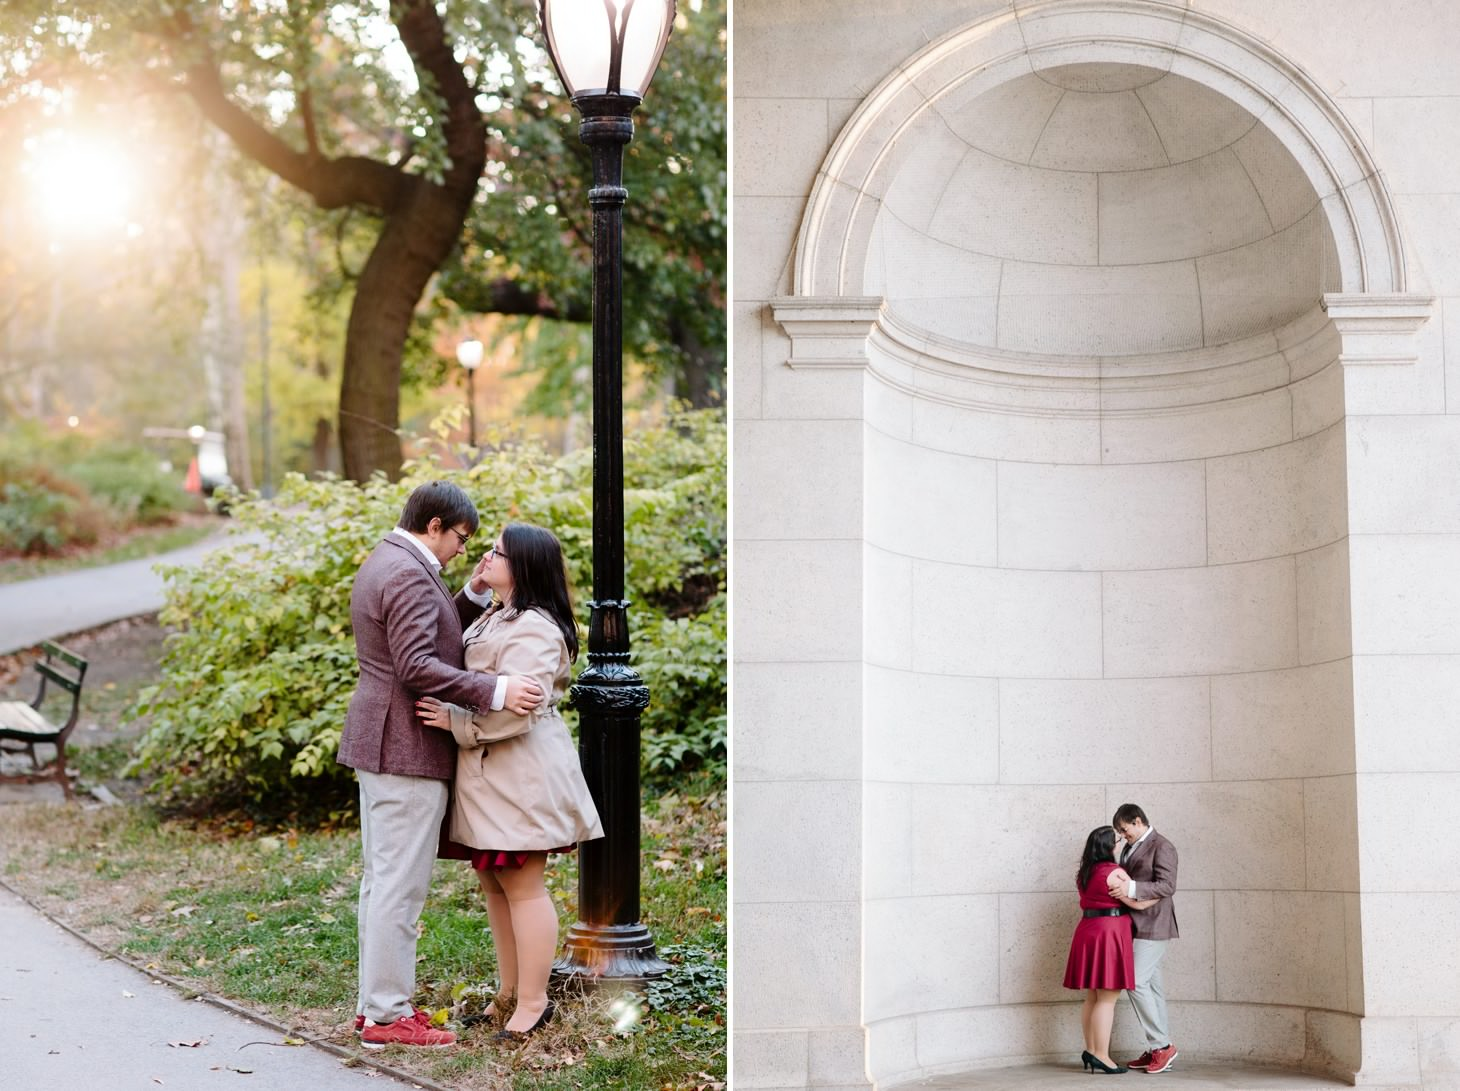 011-nyc-wedding-photographer-puppy-museum-of-natural-history-mud-coffee-fall-central-park-engagement.jpg